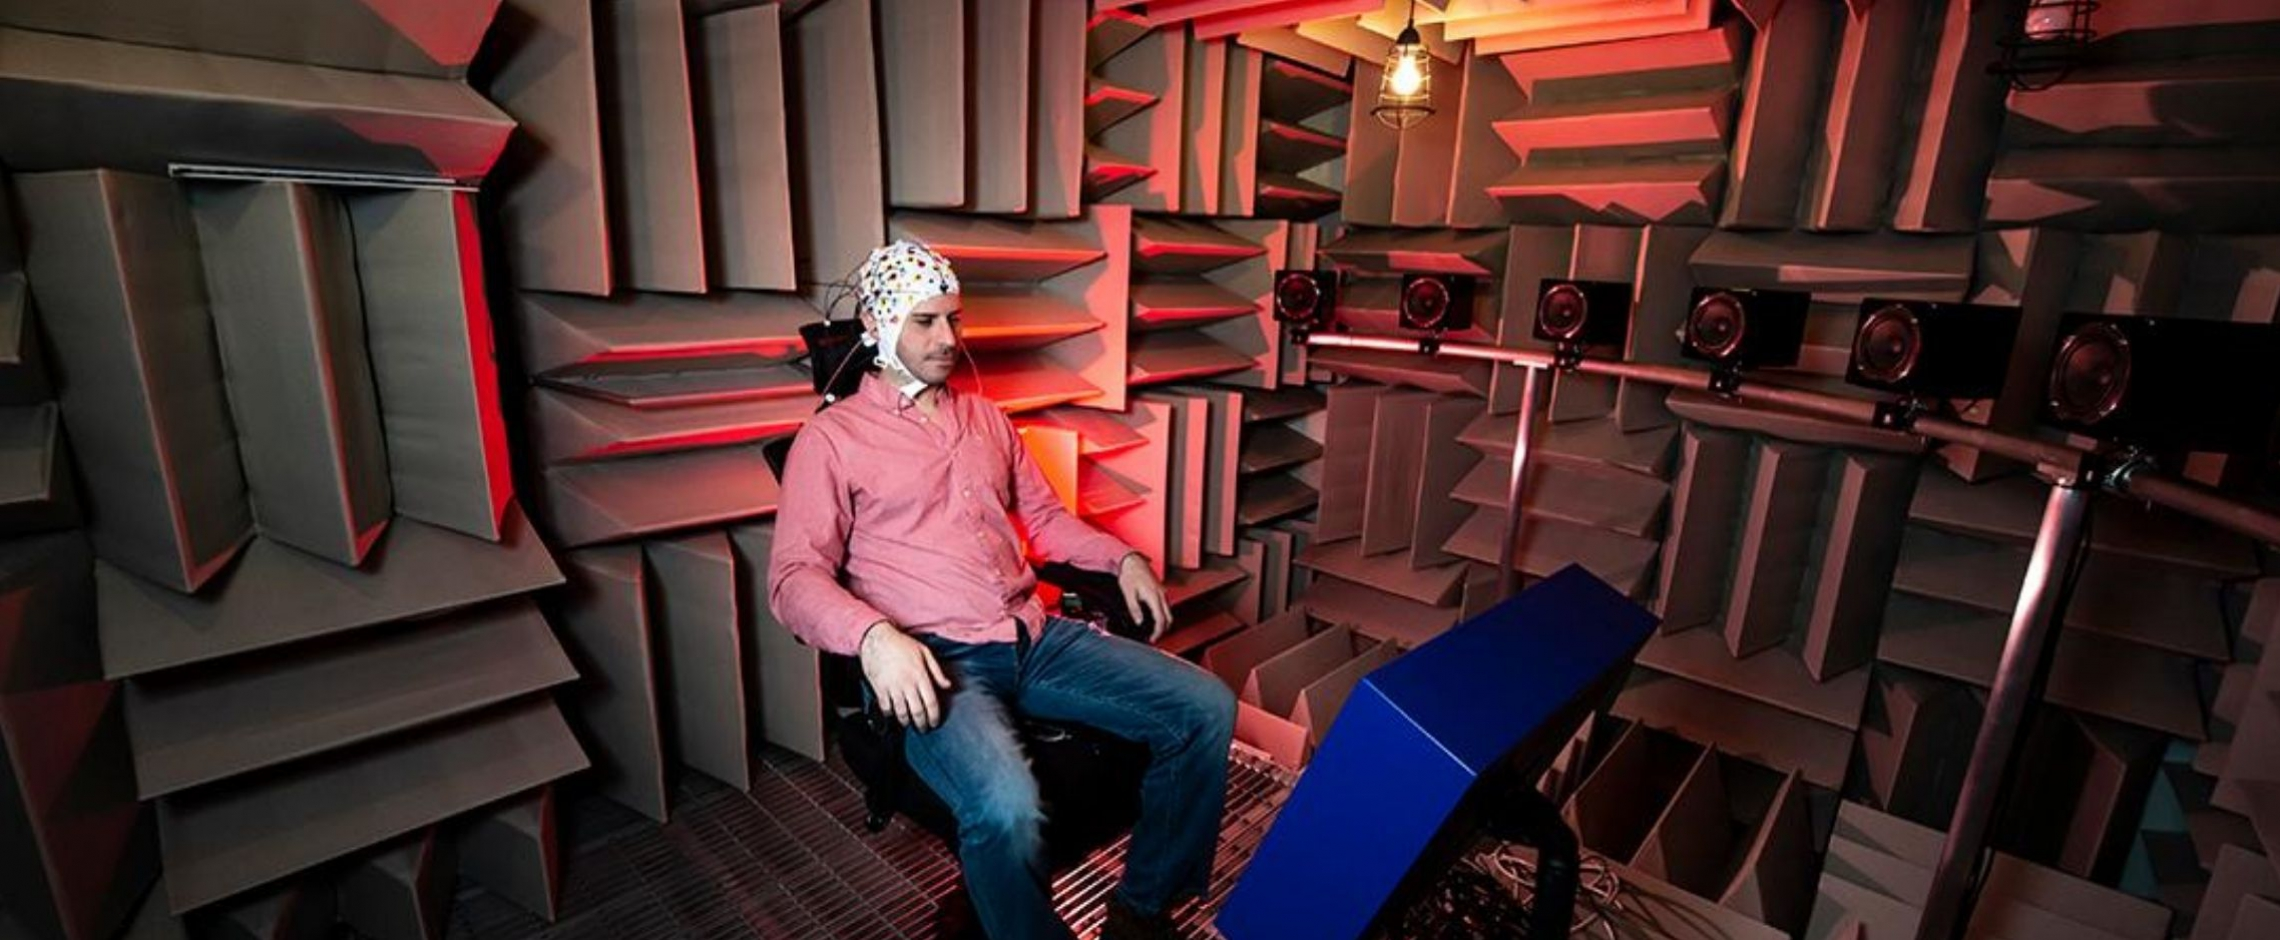 subject in anechoic chamber